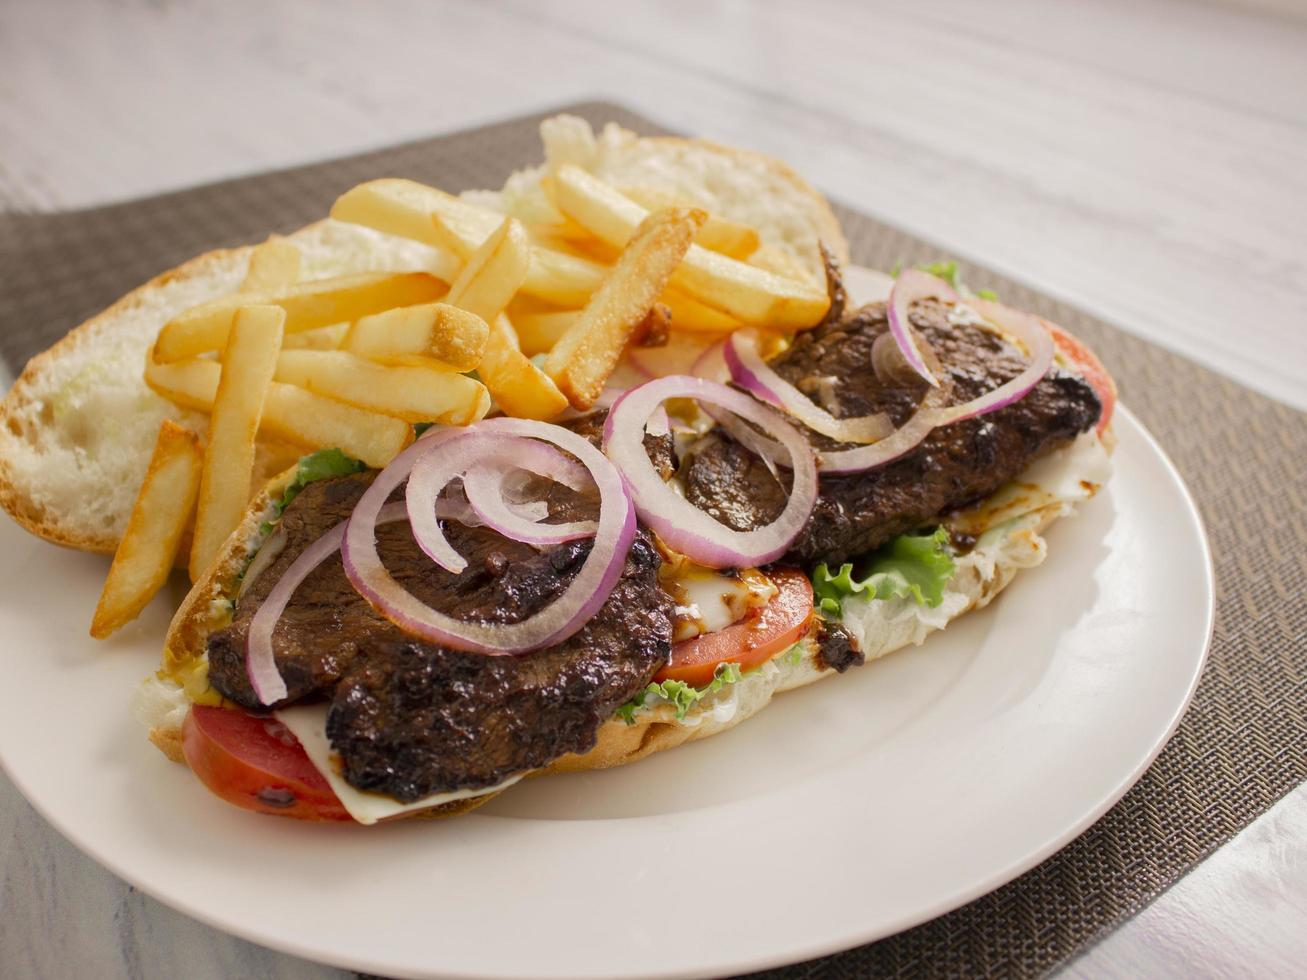 Tenderloin beef sub sandwich. photo